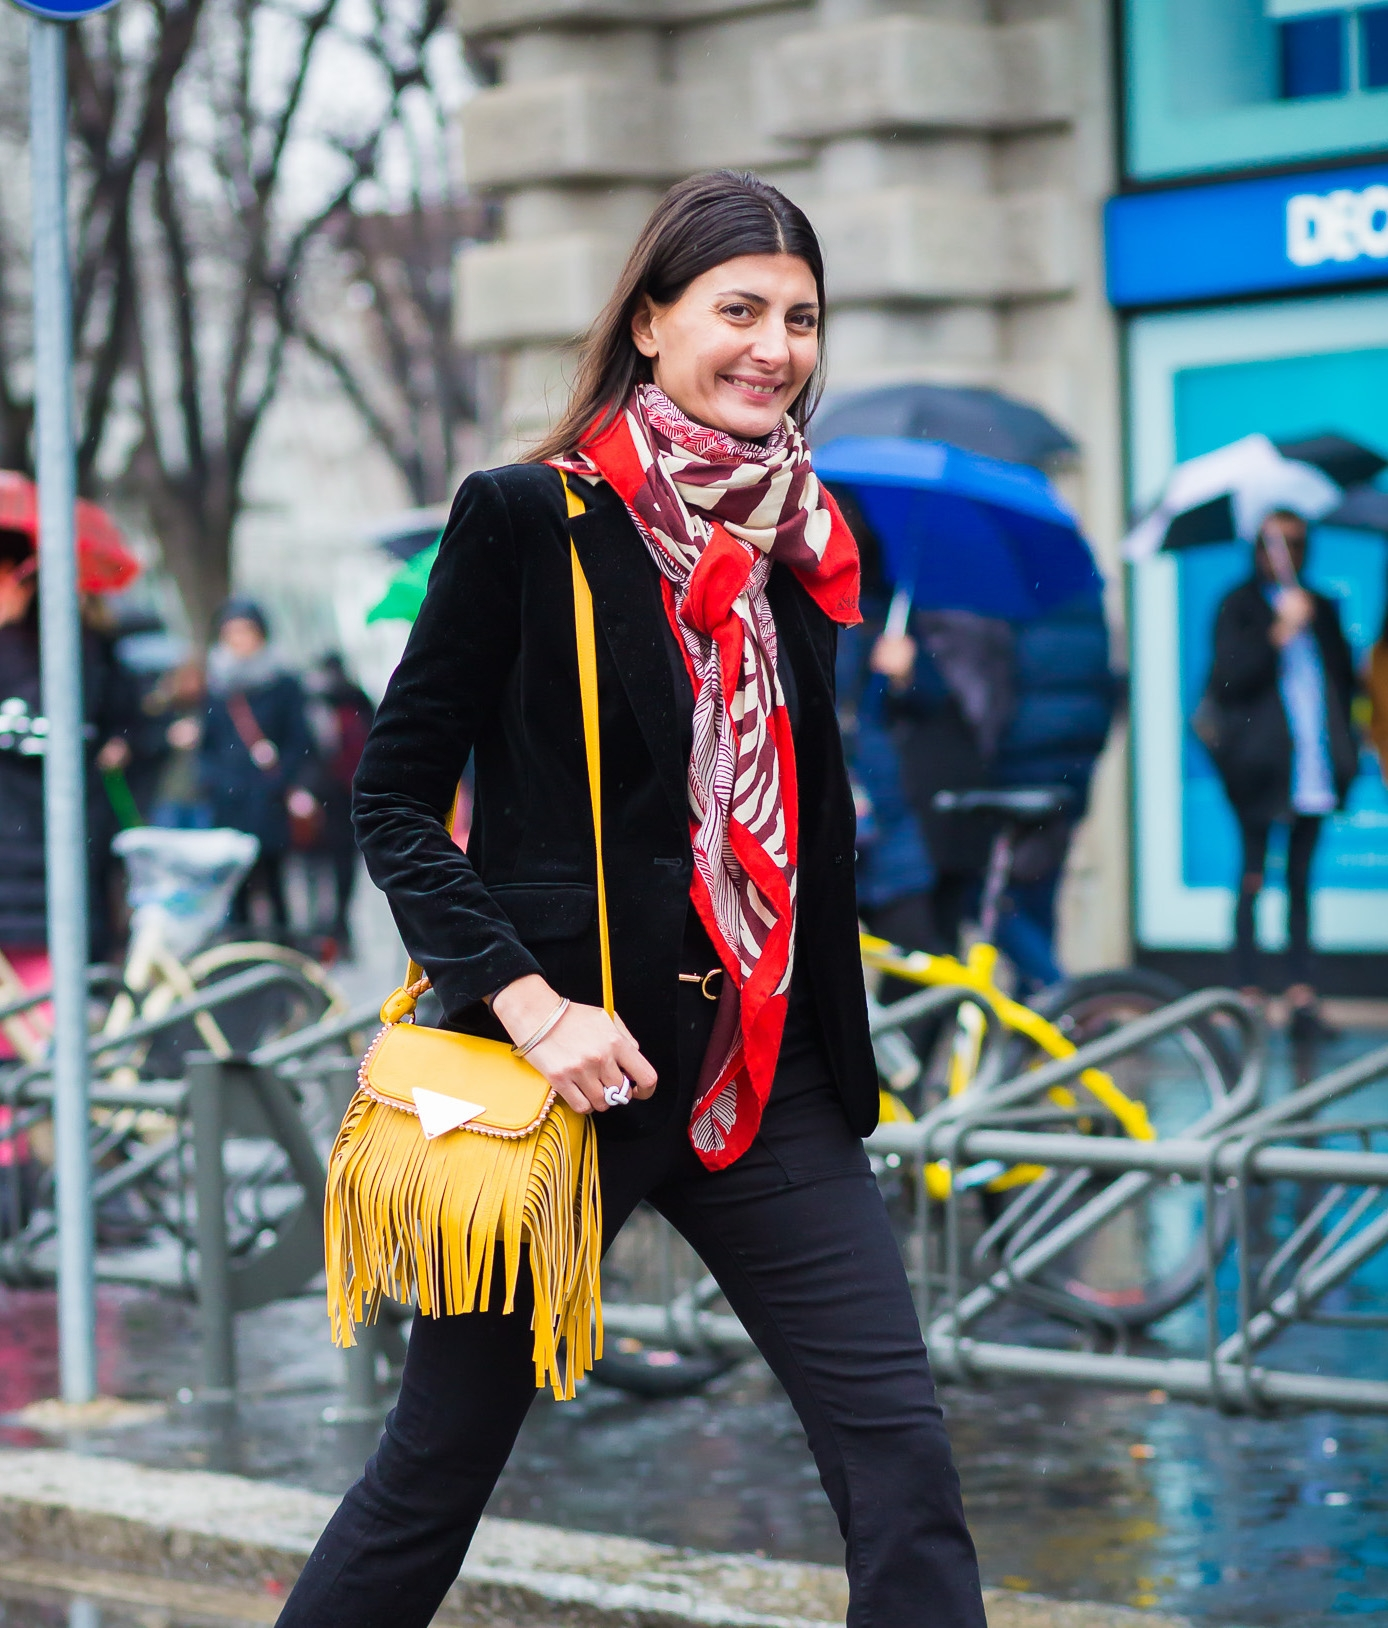 Giovanna-Battaglia-by-STYLEDUMONDE-Street-Style-Fashion-Photography0E2A1416-700x1050@2x